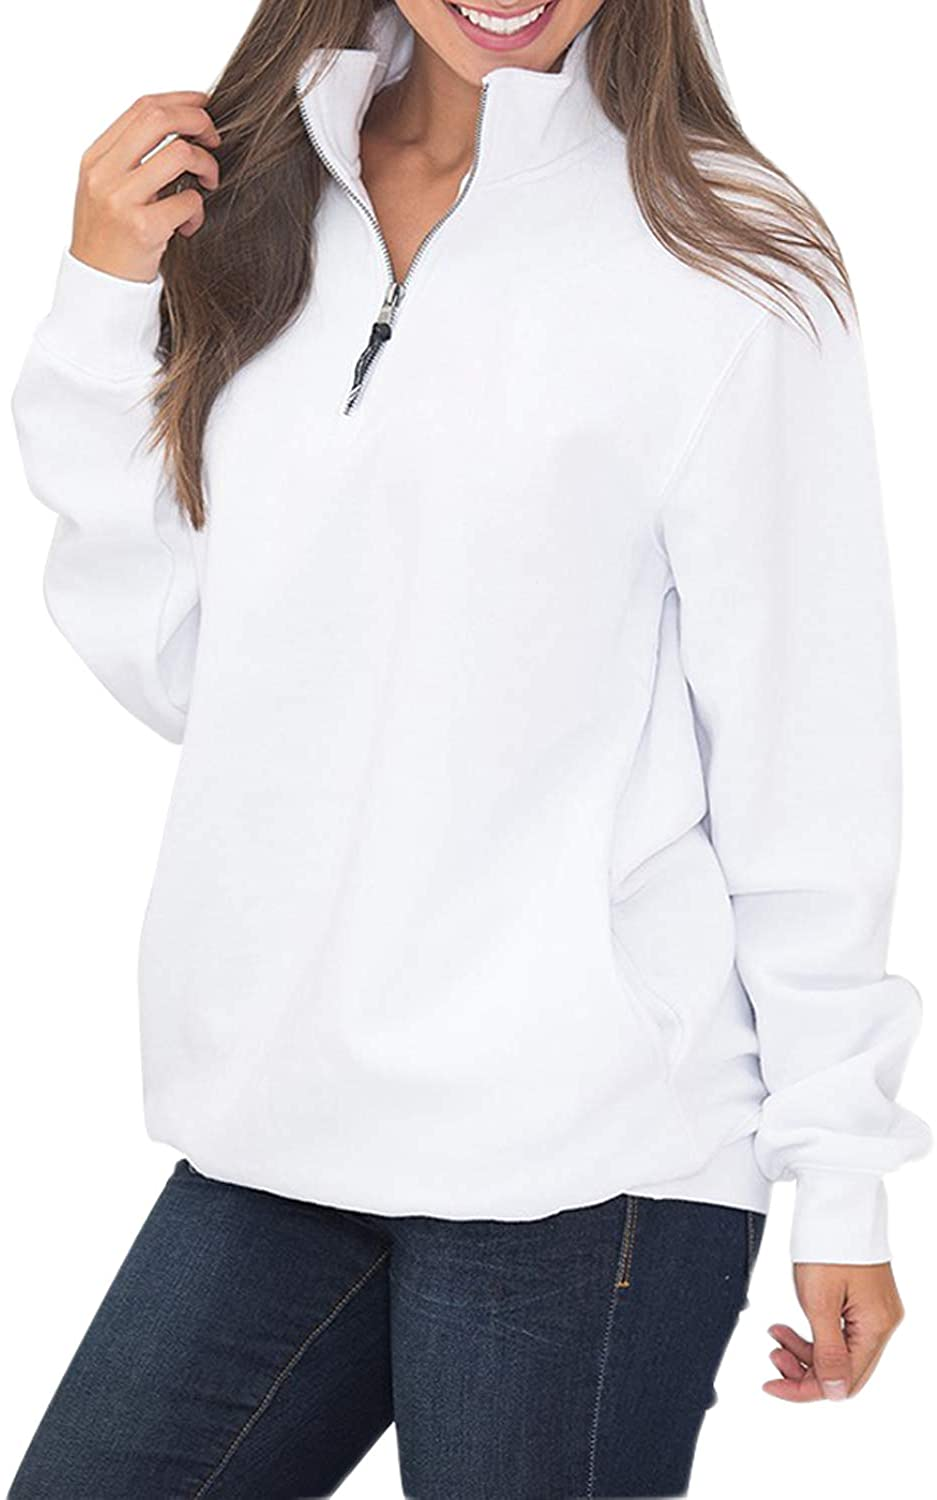 Malaven Womens Quarter Zip Sweatshirts Long Sleeve Pullover Sweatshirts with Pockets